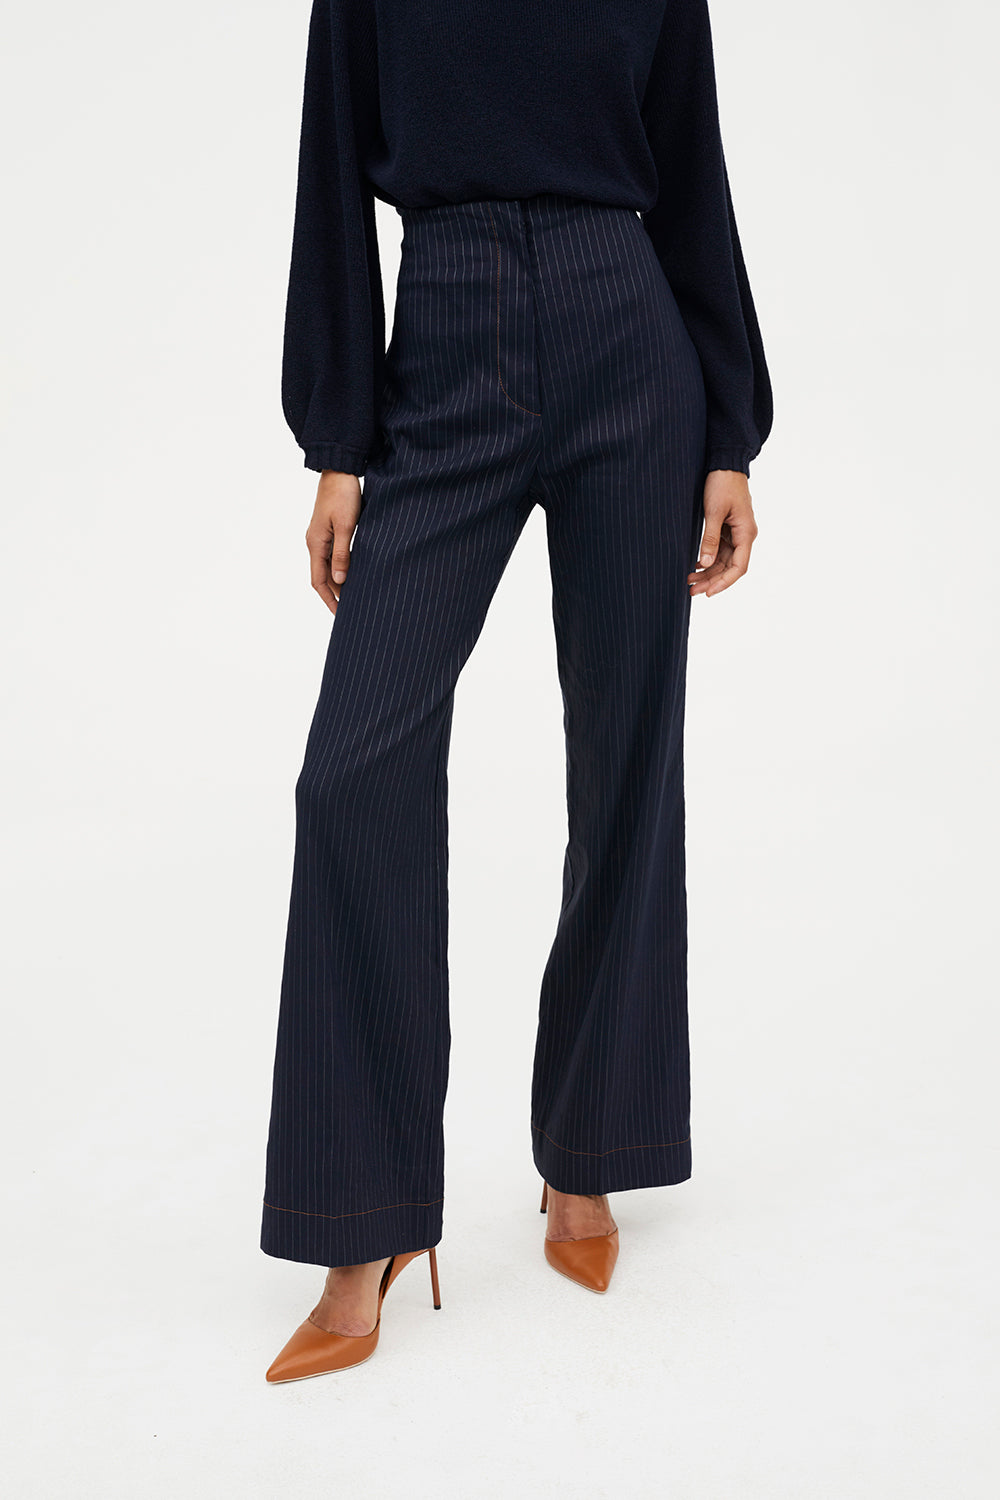 5d84e7858a4 Utility Theory Wide Leg Pant in Navy | Ethical Designer Pants by ...